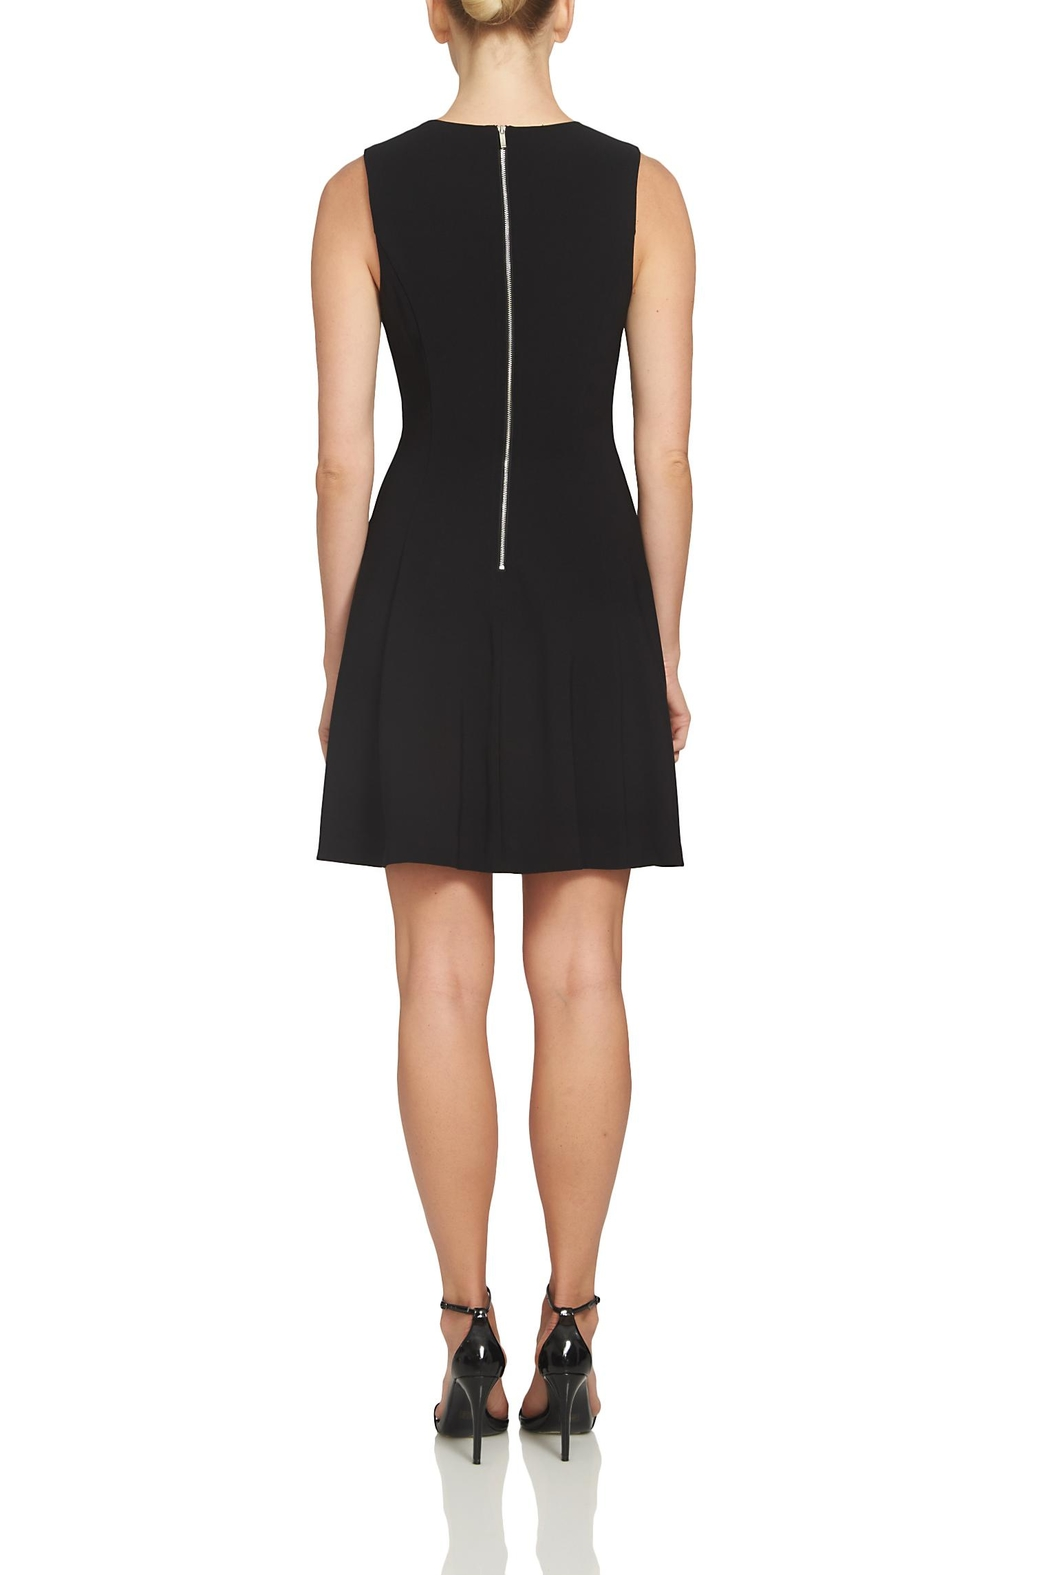 1.State Cross Tie Black Dress - Front Full Image